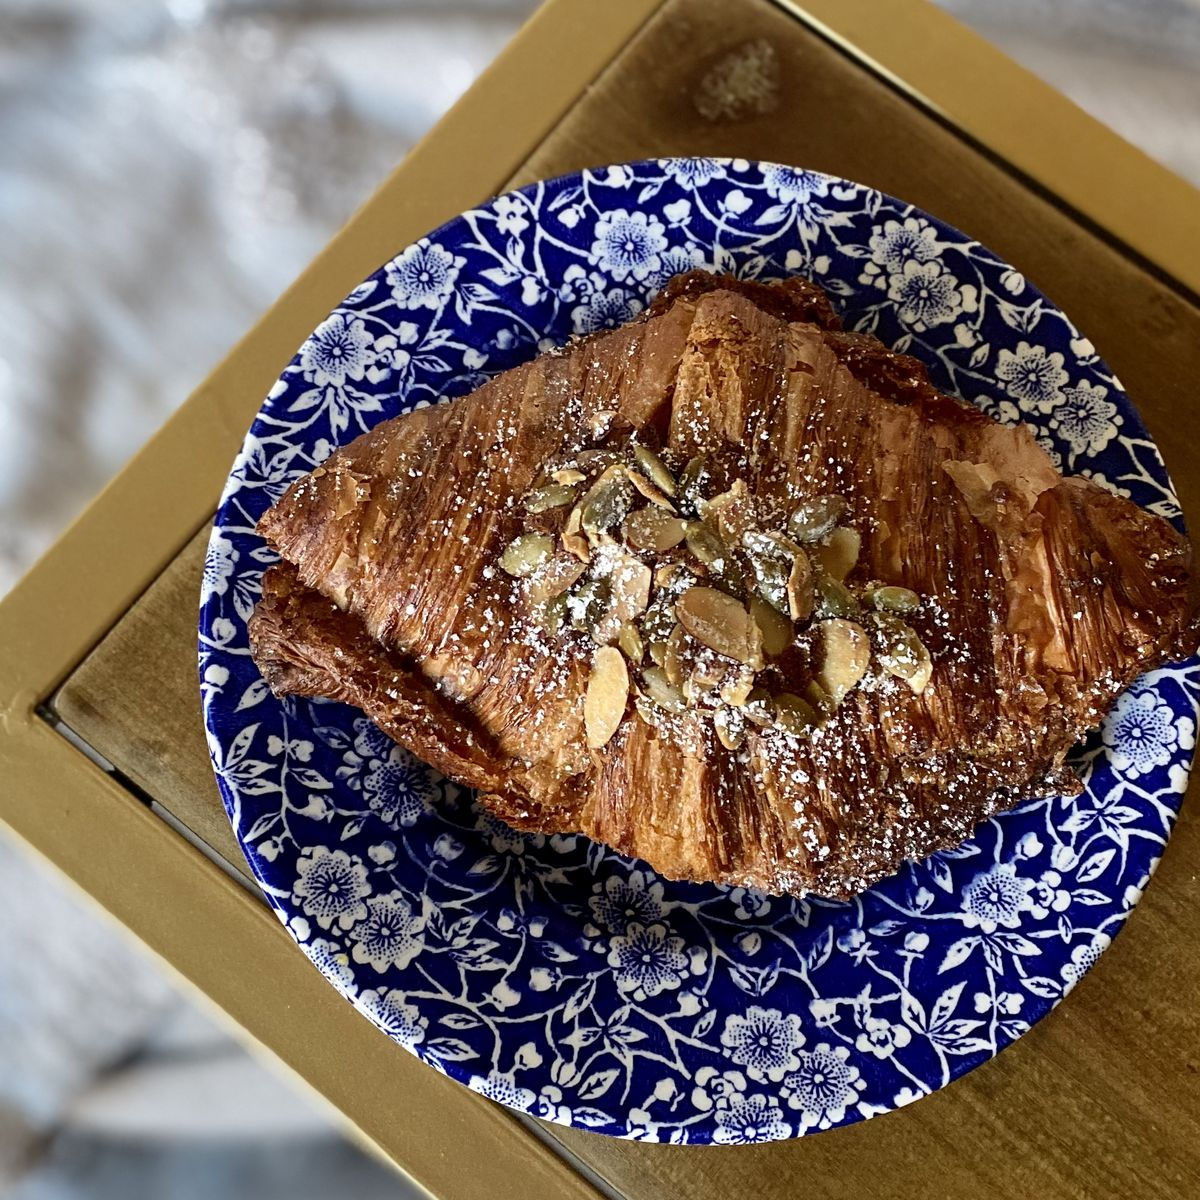 A croissant topped with almonds and pepitas on a blue-flowered plate.